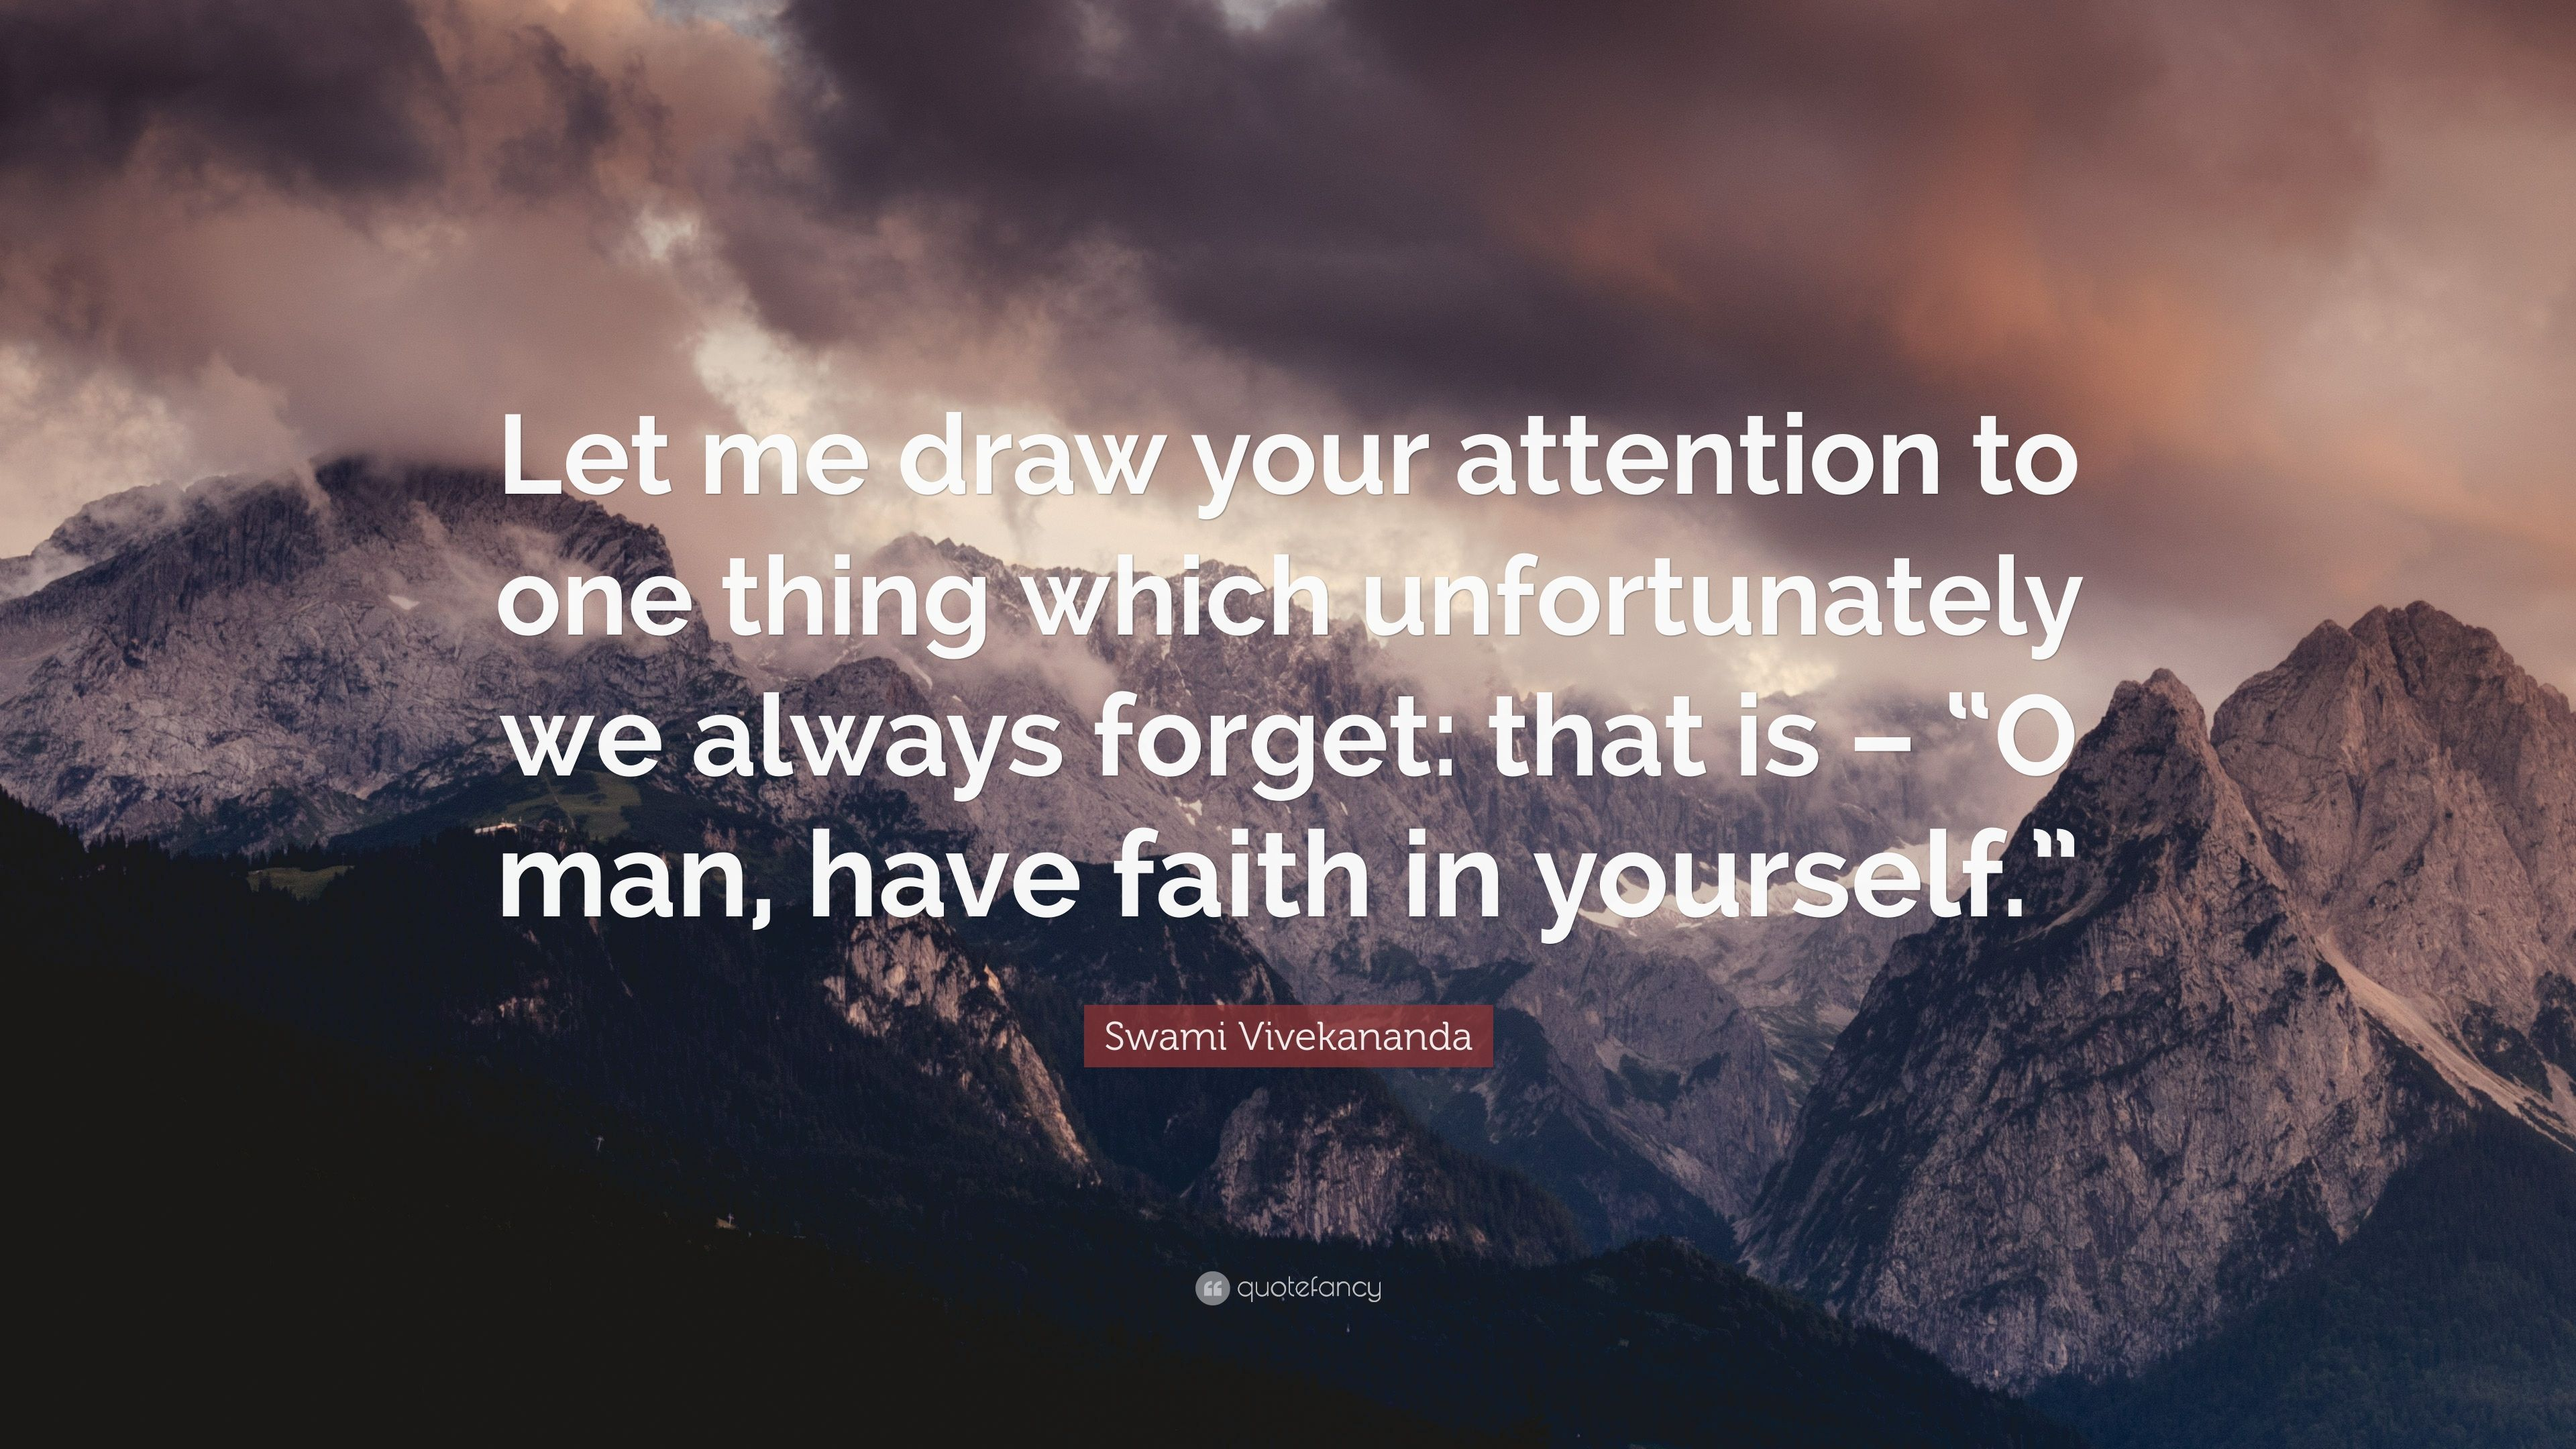 Swami Vivekananda Quote Let Me Draw Your Attention To One Thing